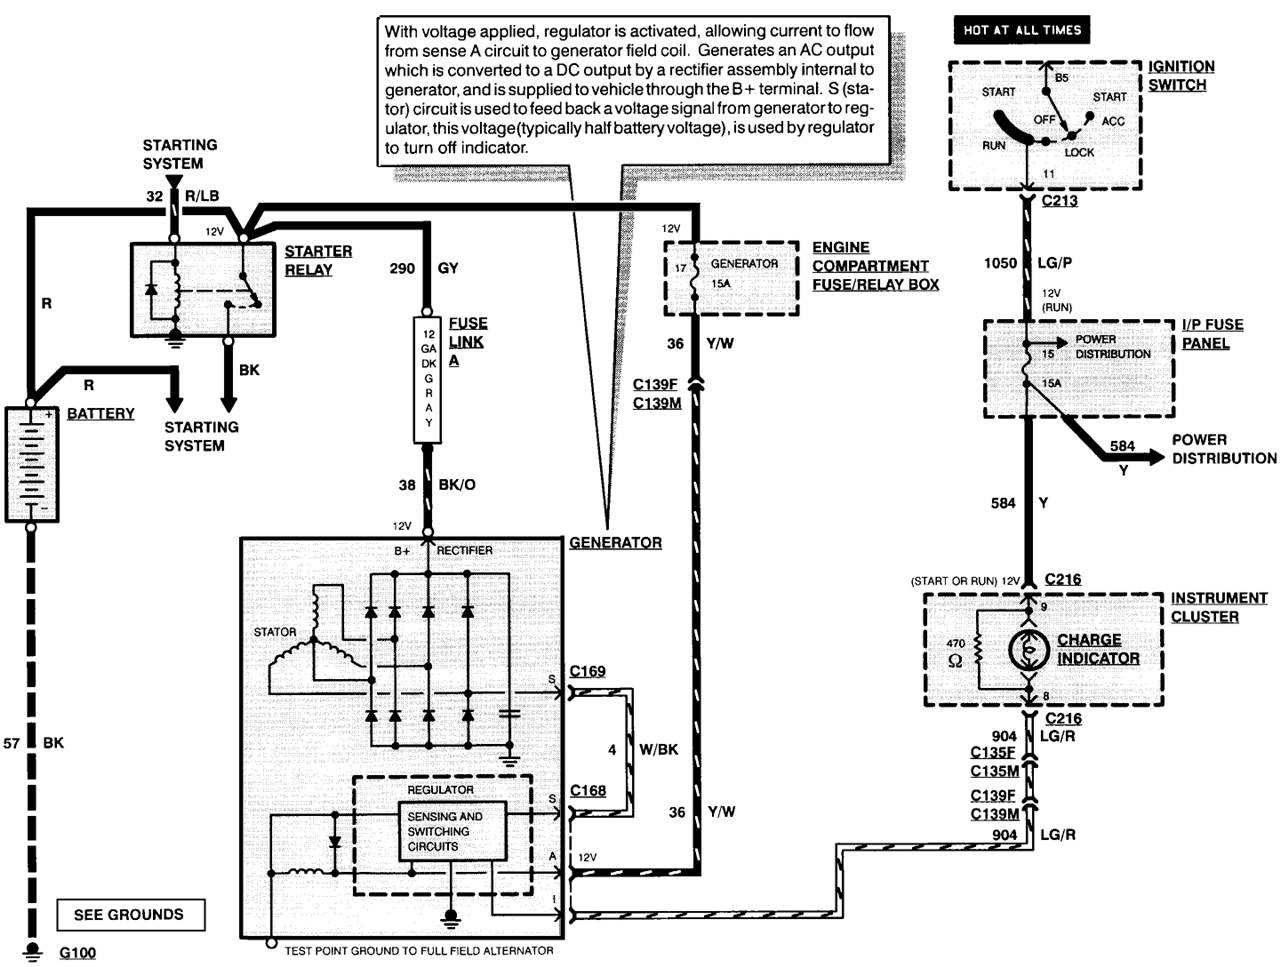 Delco Alternator External Regulator Wiring Diagram bosch ... on bosch tachometer wiring diagram, denso alternator diagram, hitachi alternator diagram, auto alternator diagram, lucas alternator diagram, forklift ignition switch wiring diagram, bosch electronic ignition wiring diagram, bosch drill wiring diagram, alternator block diagram, bosch dishwasher wiring-diagram, alternator parts diagram, vdo tachometer wiring diagram, mitsubishi alternator diagram, bosch generator diagram, bosch parts diagram, bosch washing machine wiring diagram, bosch fuel gauge wiring diagram, bosch pump wiring diagram, alternator charging system diagram, water well pump wiring diagram,